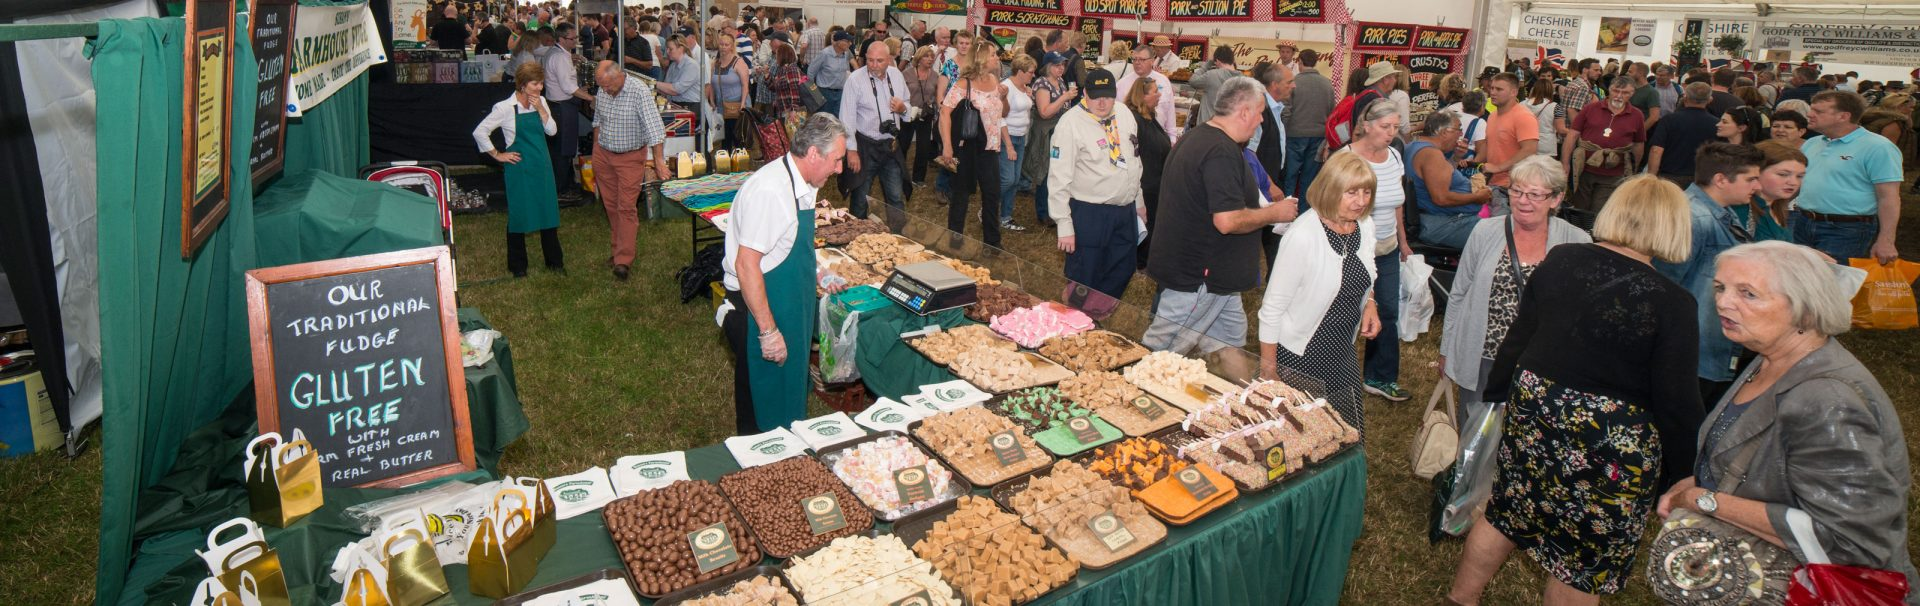 Trade Stands For : Trade stands the royal cheshire county show